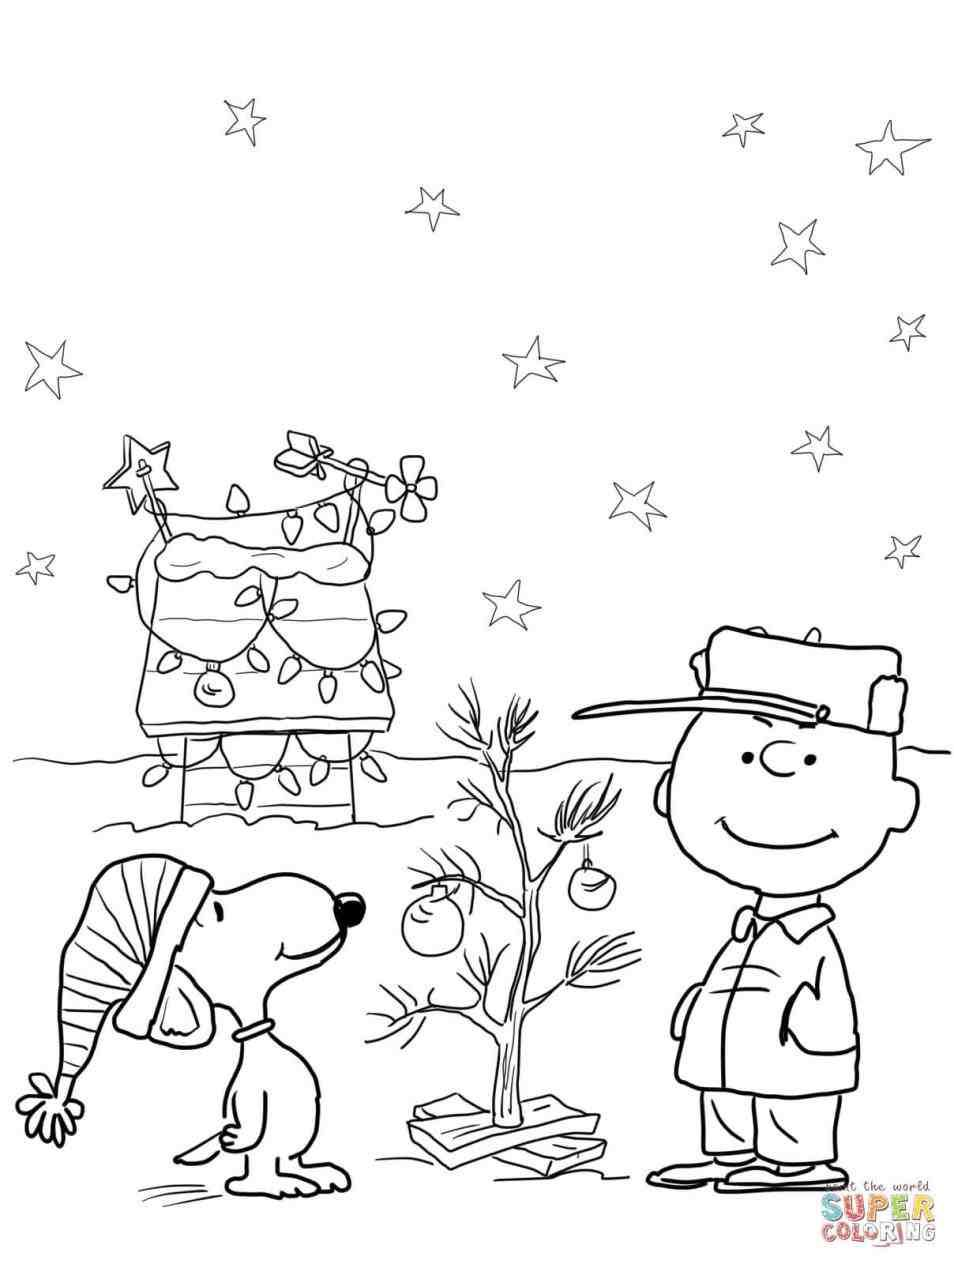 Christmas Colouring Pages Rudolph With New Charlie Brown Characters Coloring At Temasistemi